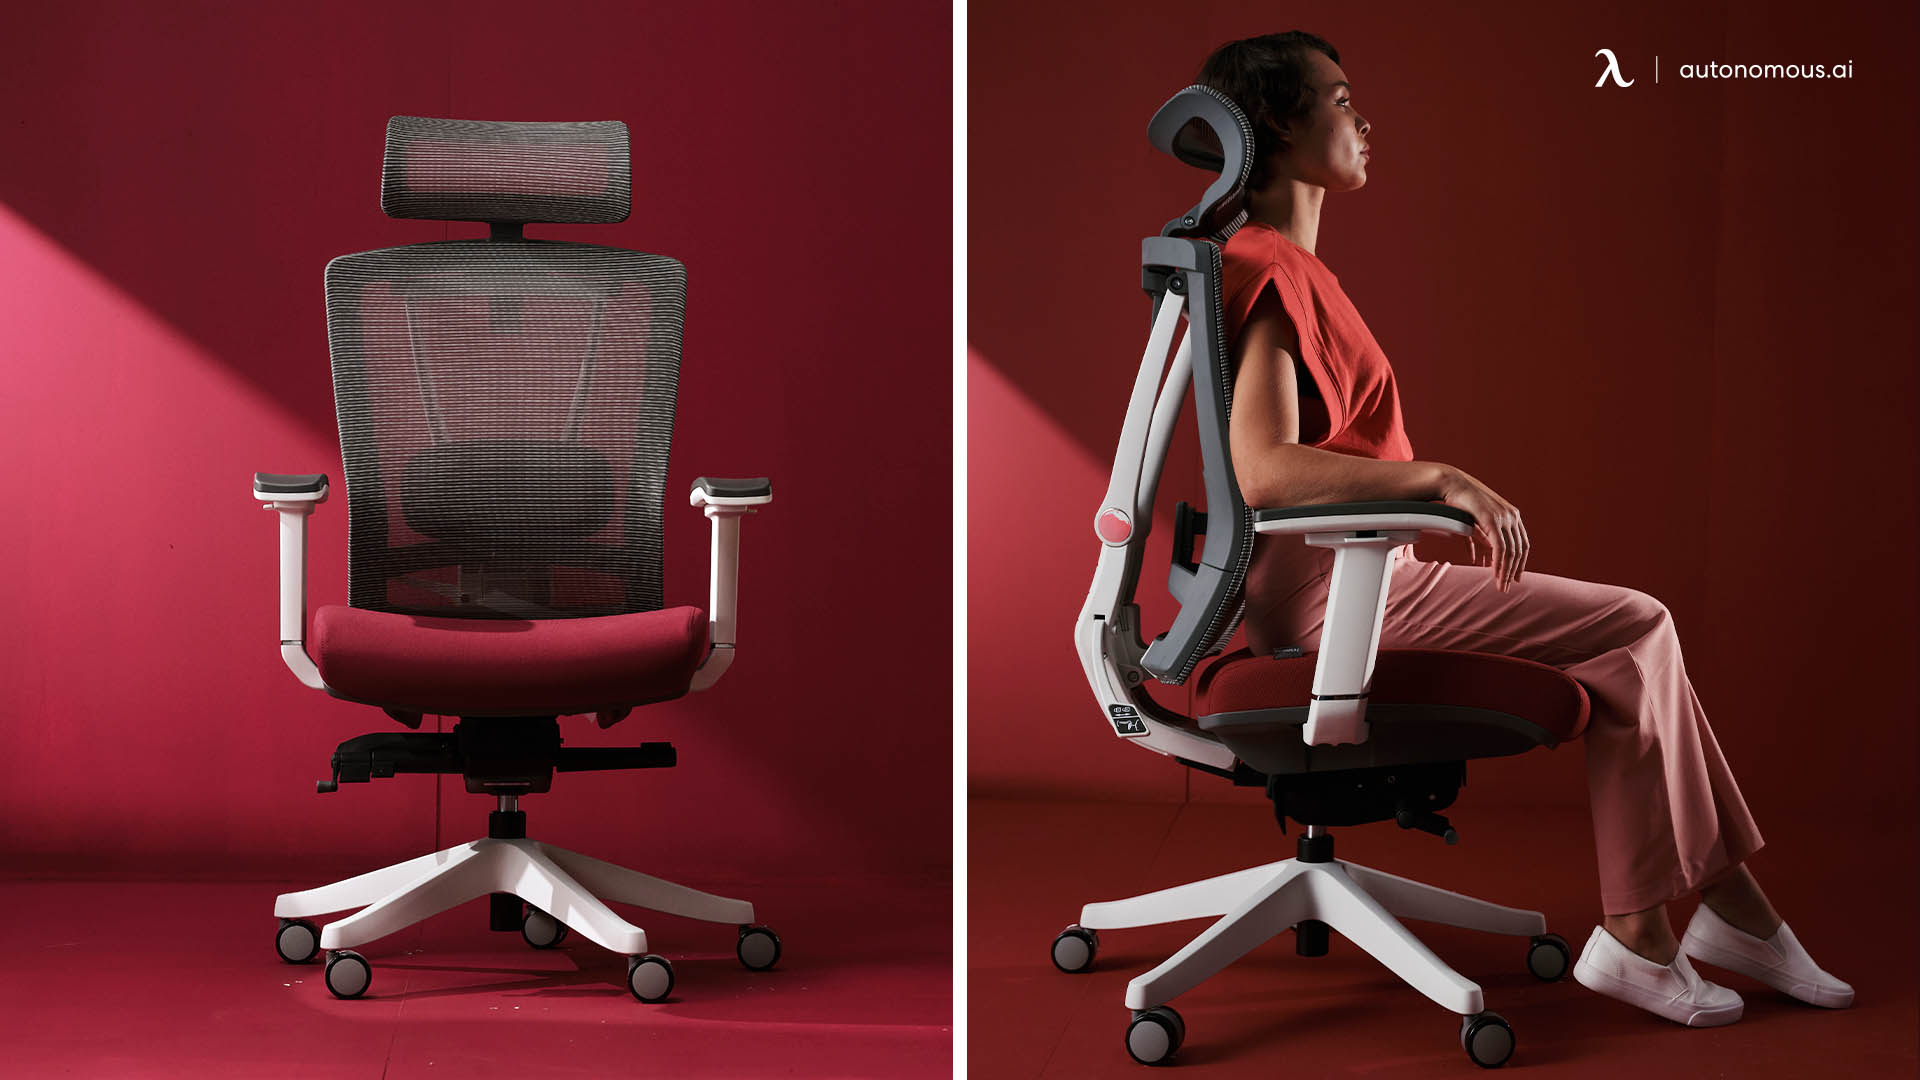 ErgoChair Pro - red office chair with arms